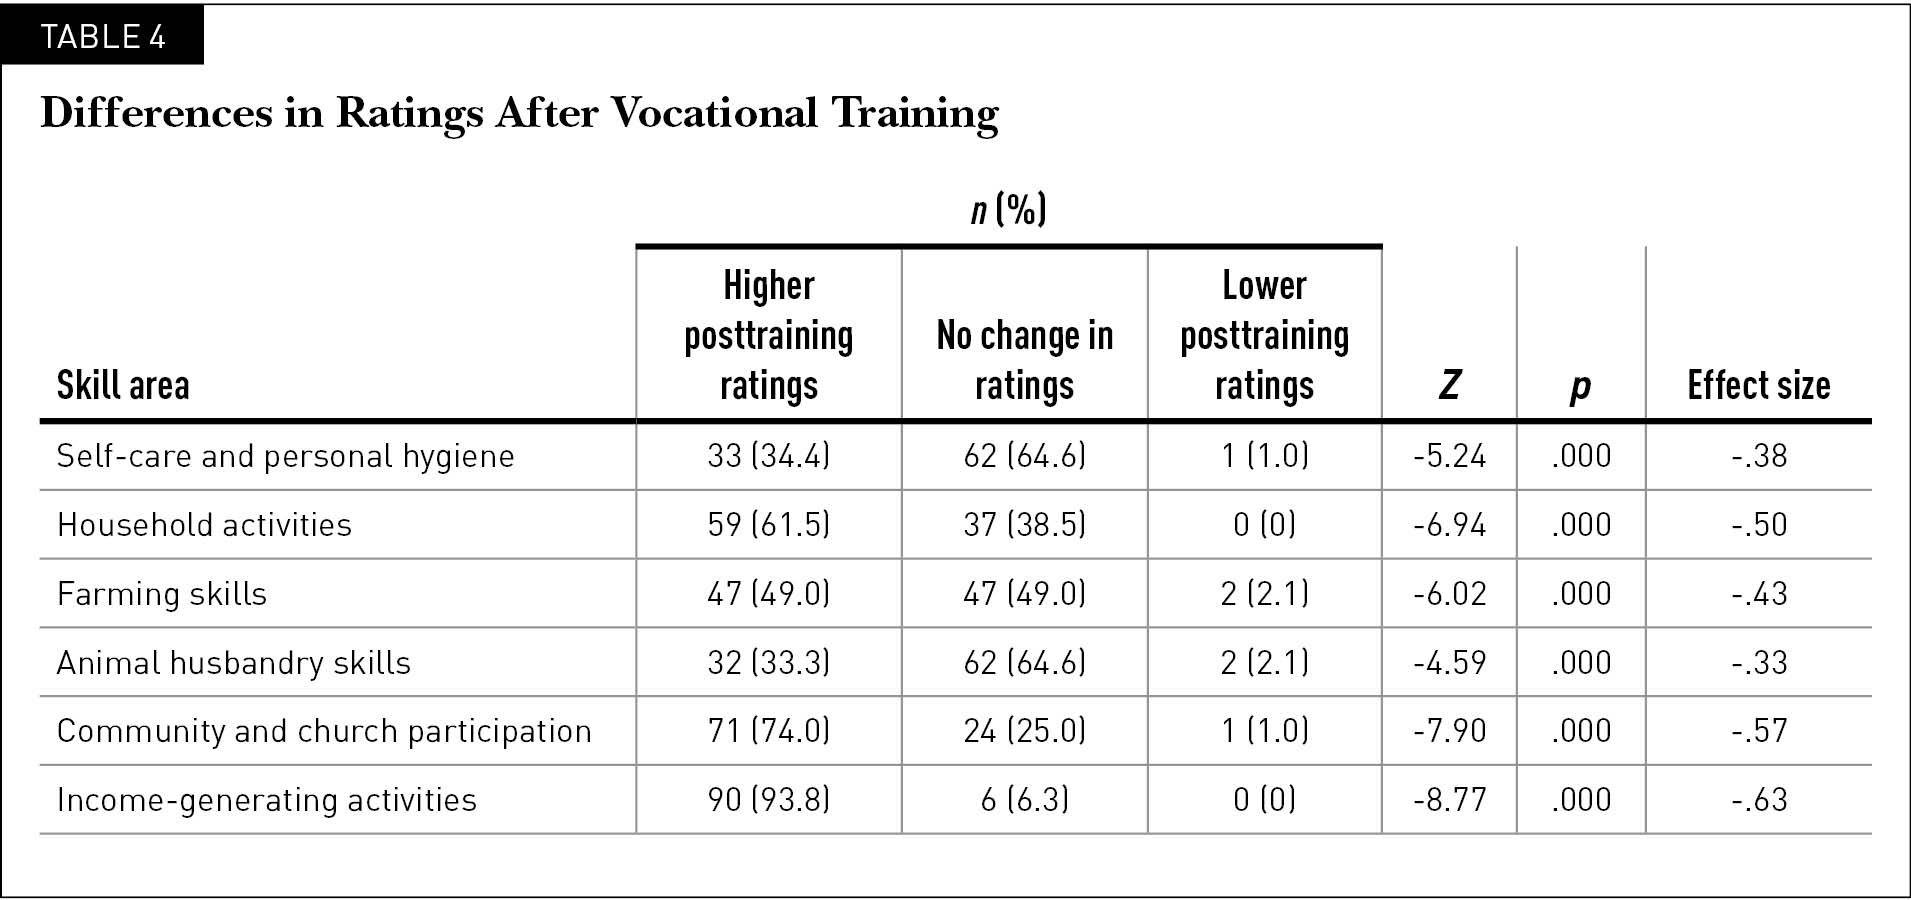 Differences in Ratings Before and After Vocational Training